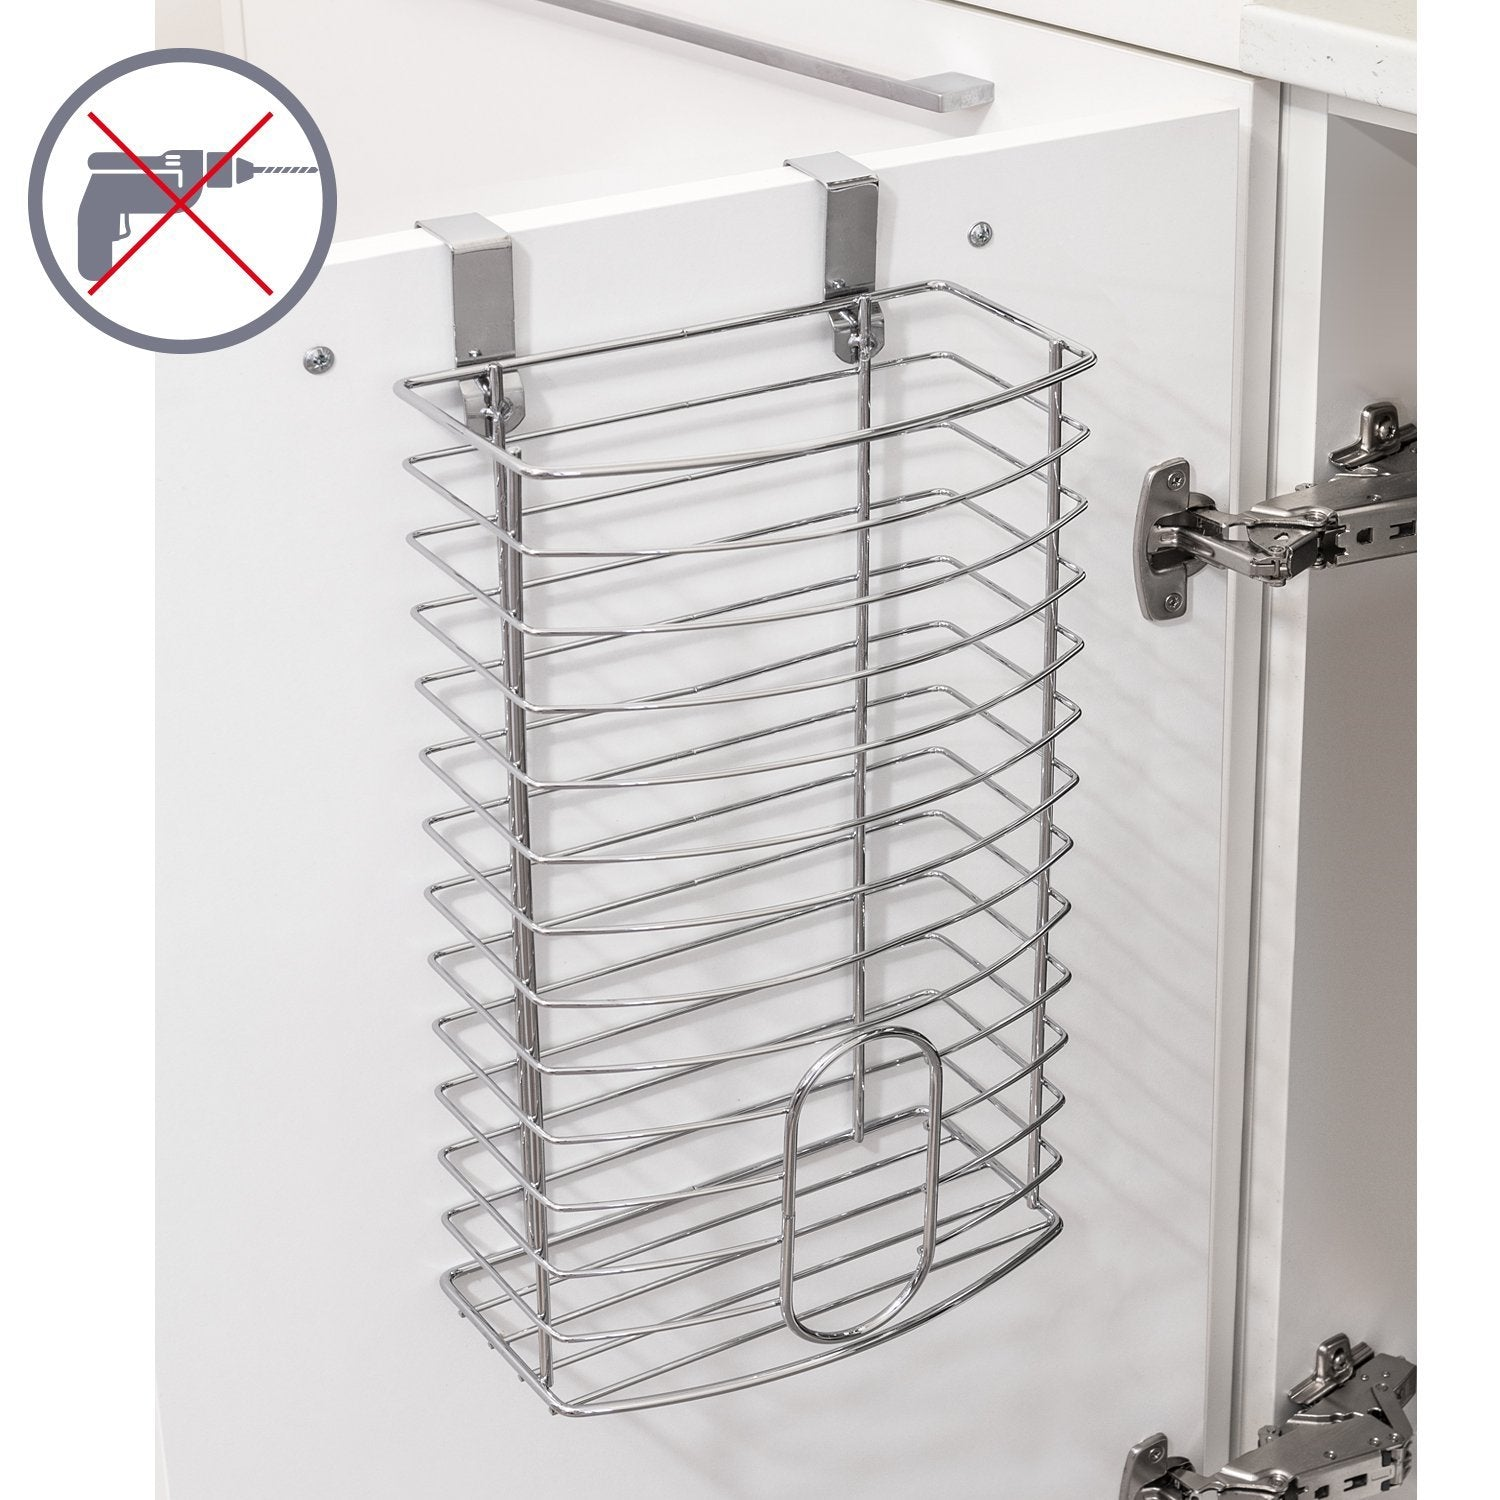 Tatkraft Fun Grocery Bag Holder - Bag Dispenser Over The Door Kitchen Storage Basket Chromed Steel